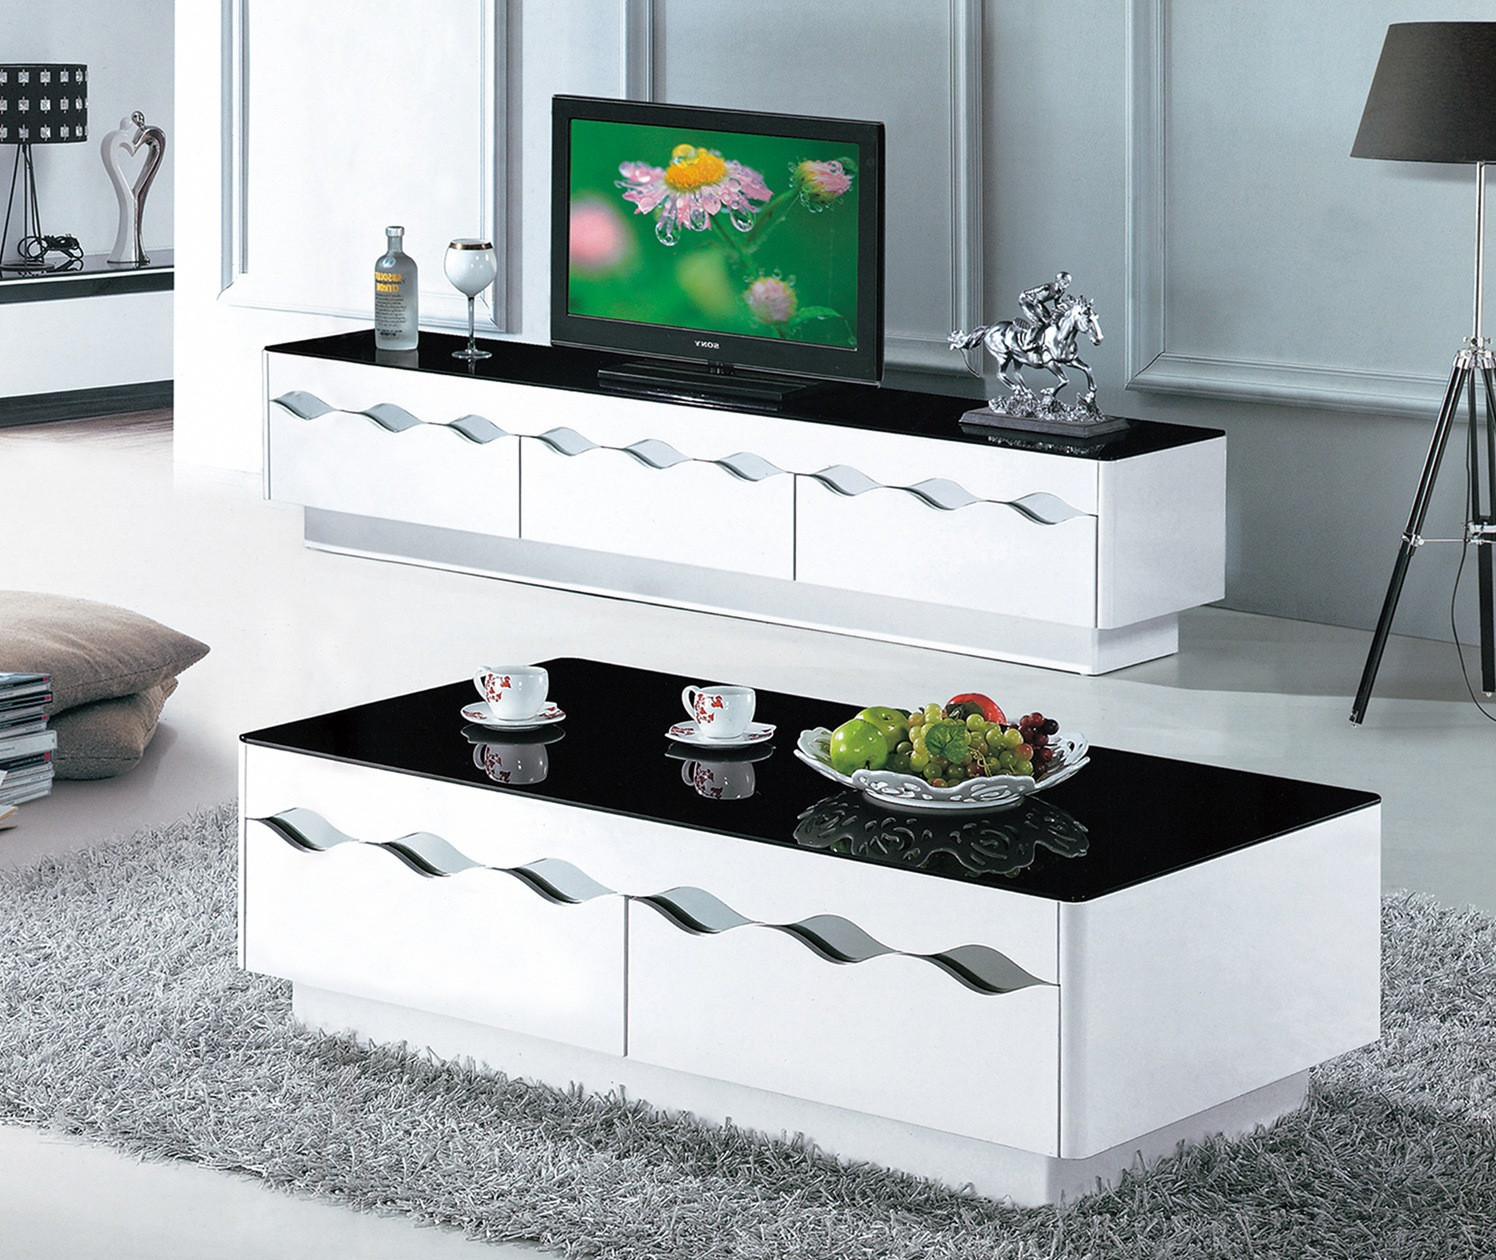 Best ideas about Tv Stand Coffee Table Set . Save or Pin Tv Stand And Coffee Table Set Now.